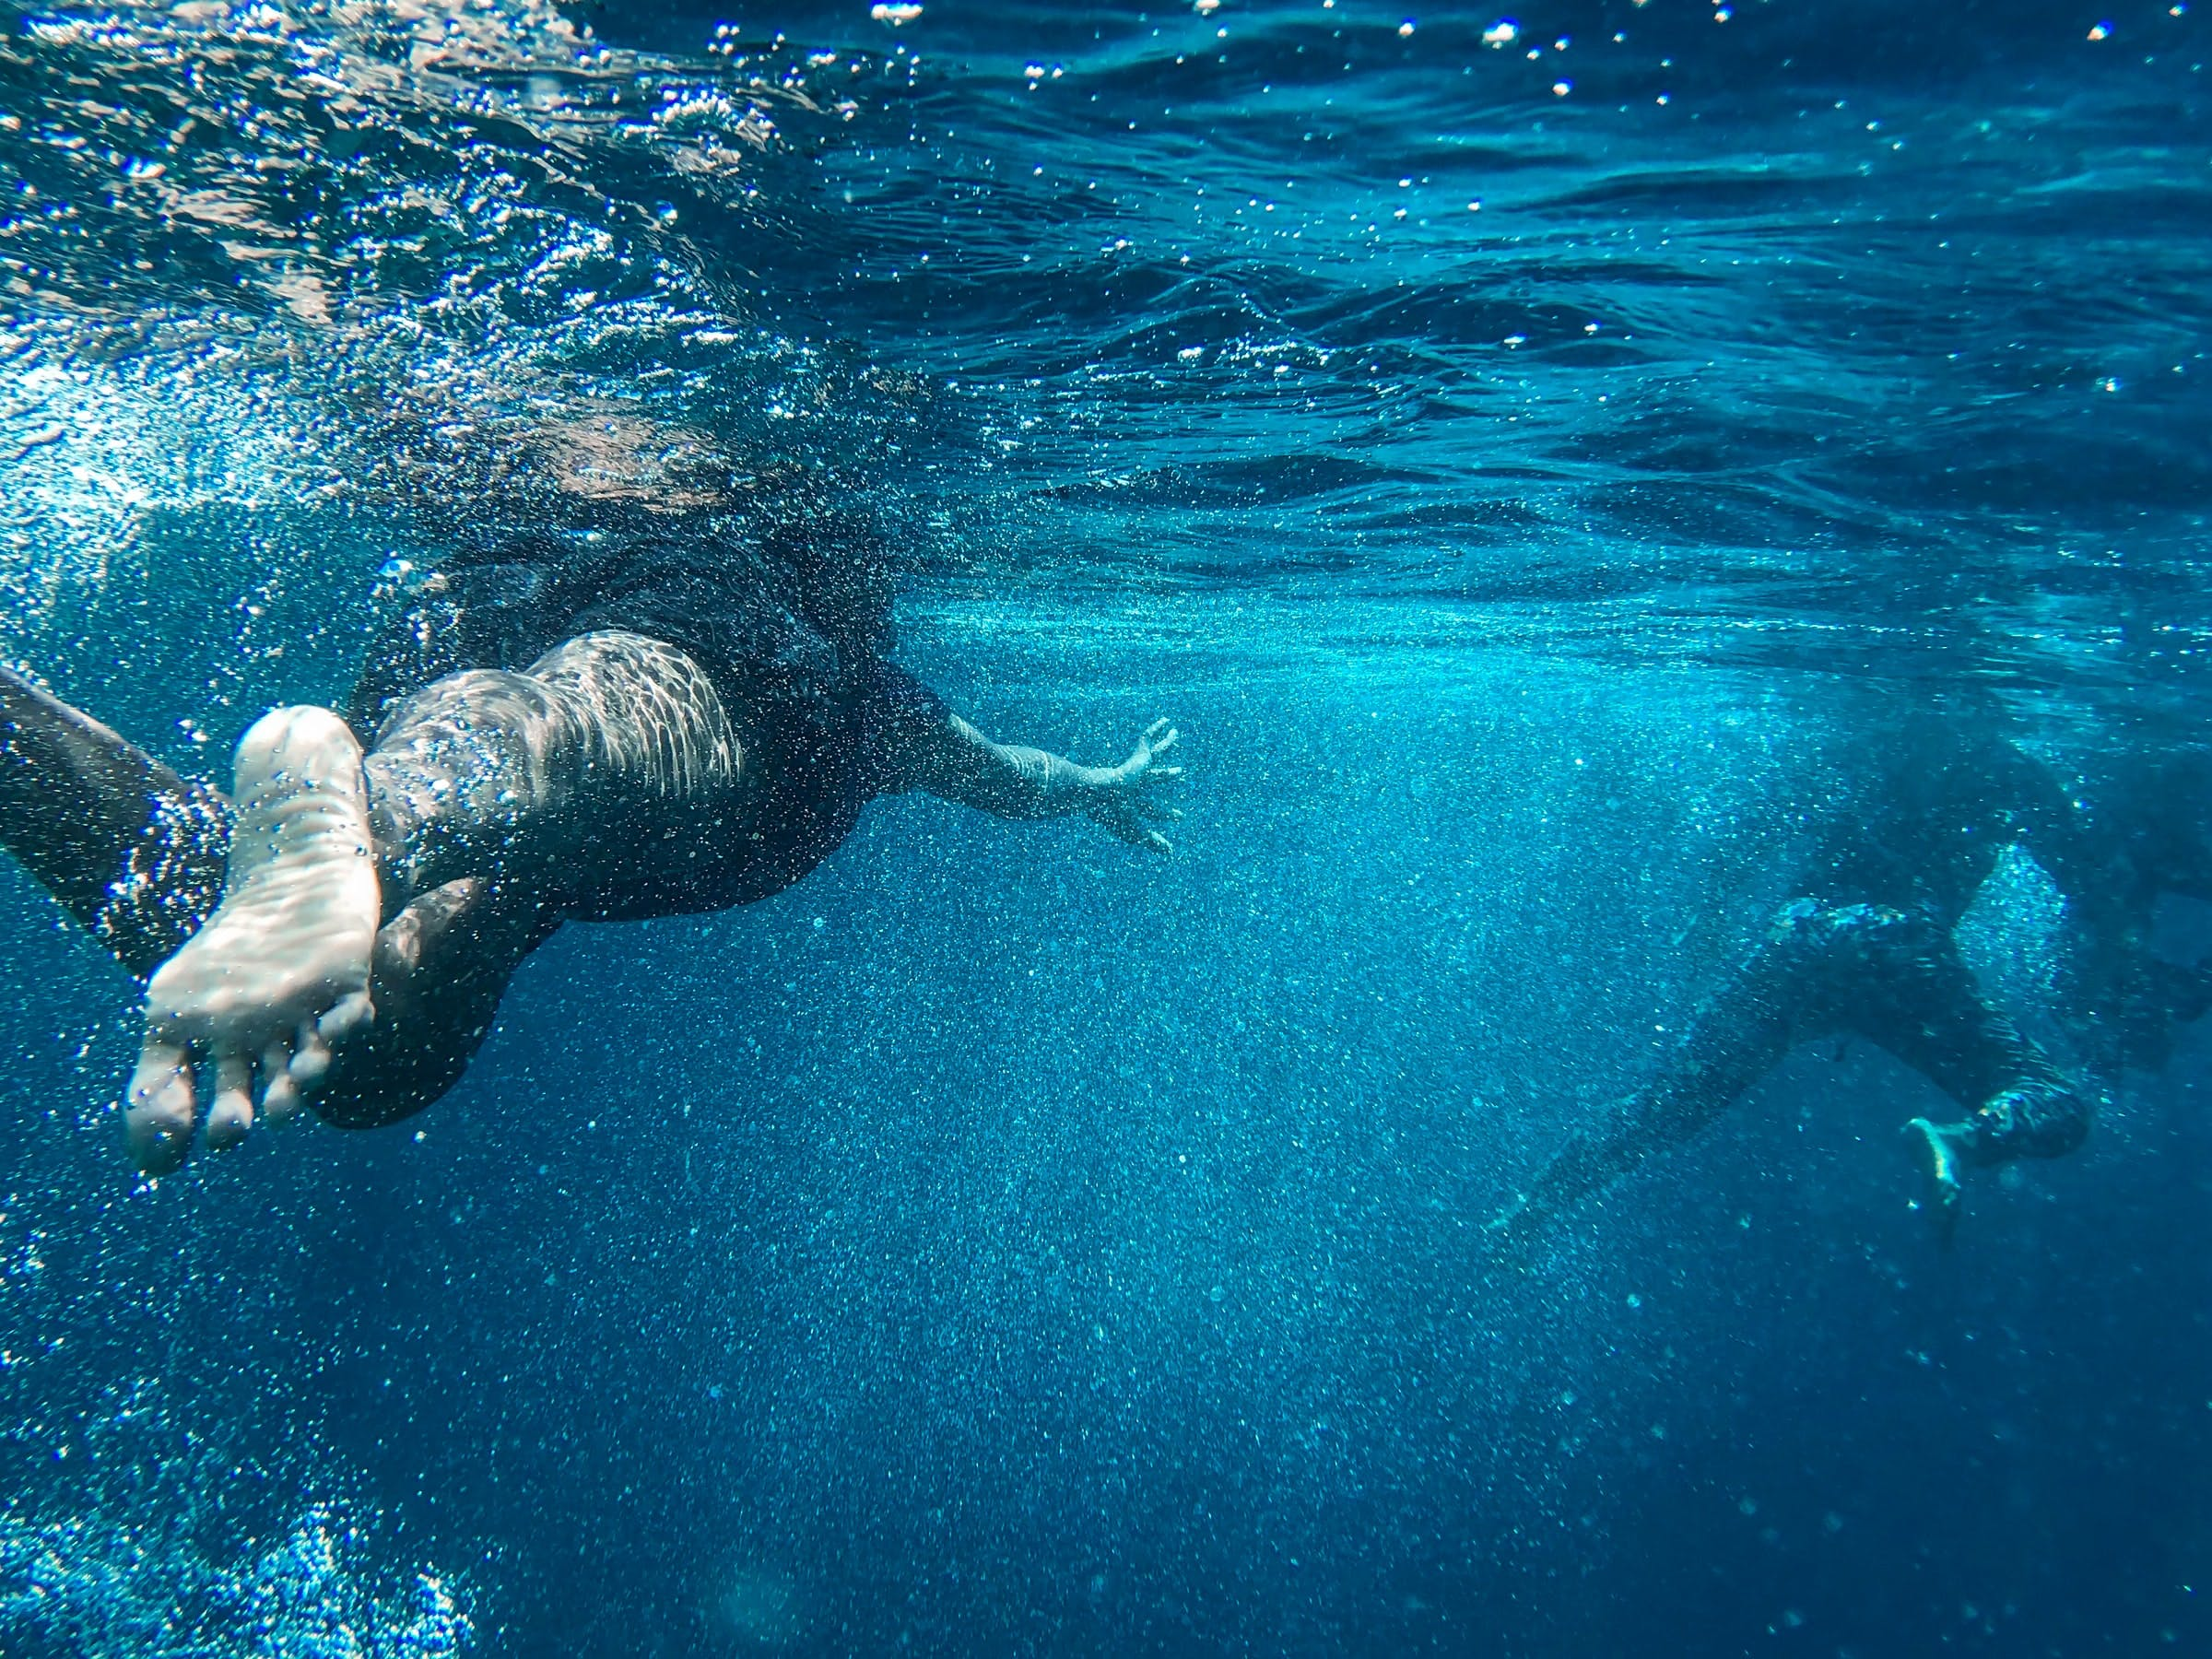 Underwater photo of two people swimming away.